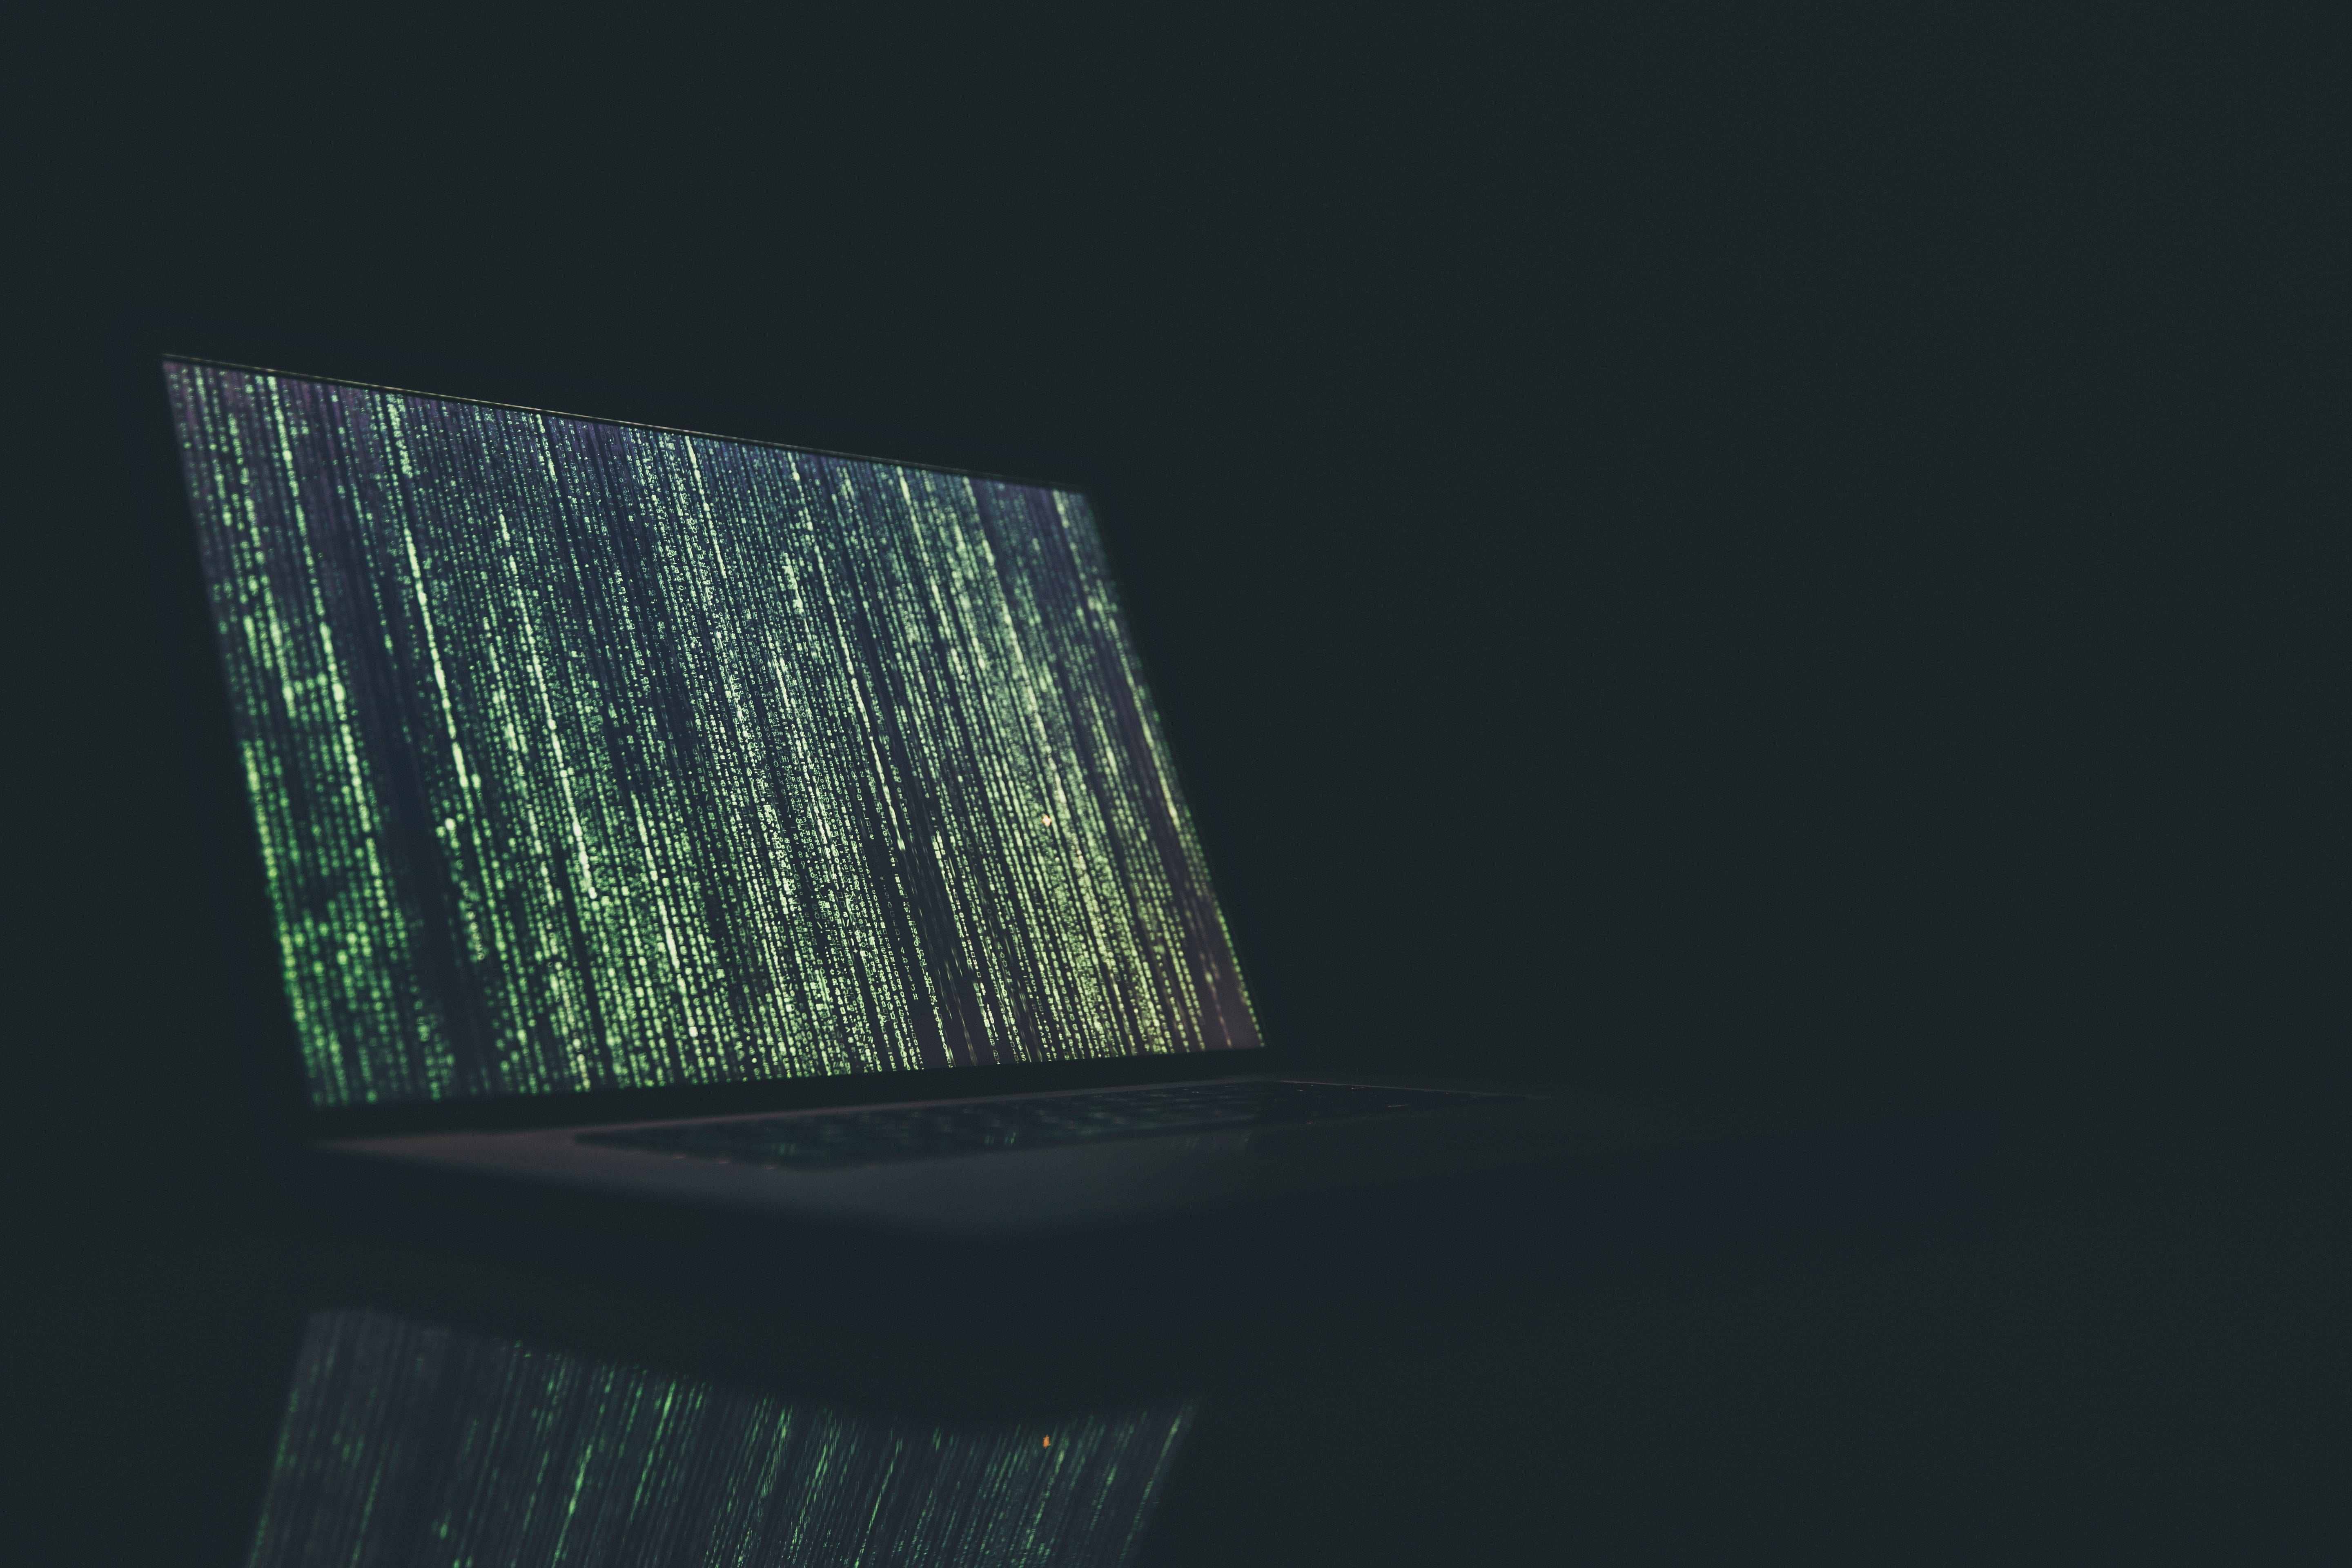 Black and gray laptop computer turned on, rows of data onscreen; image by Markus Spiske, via Unsplash.com.